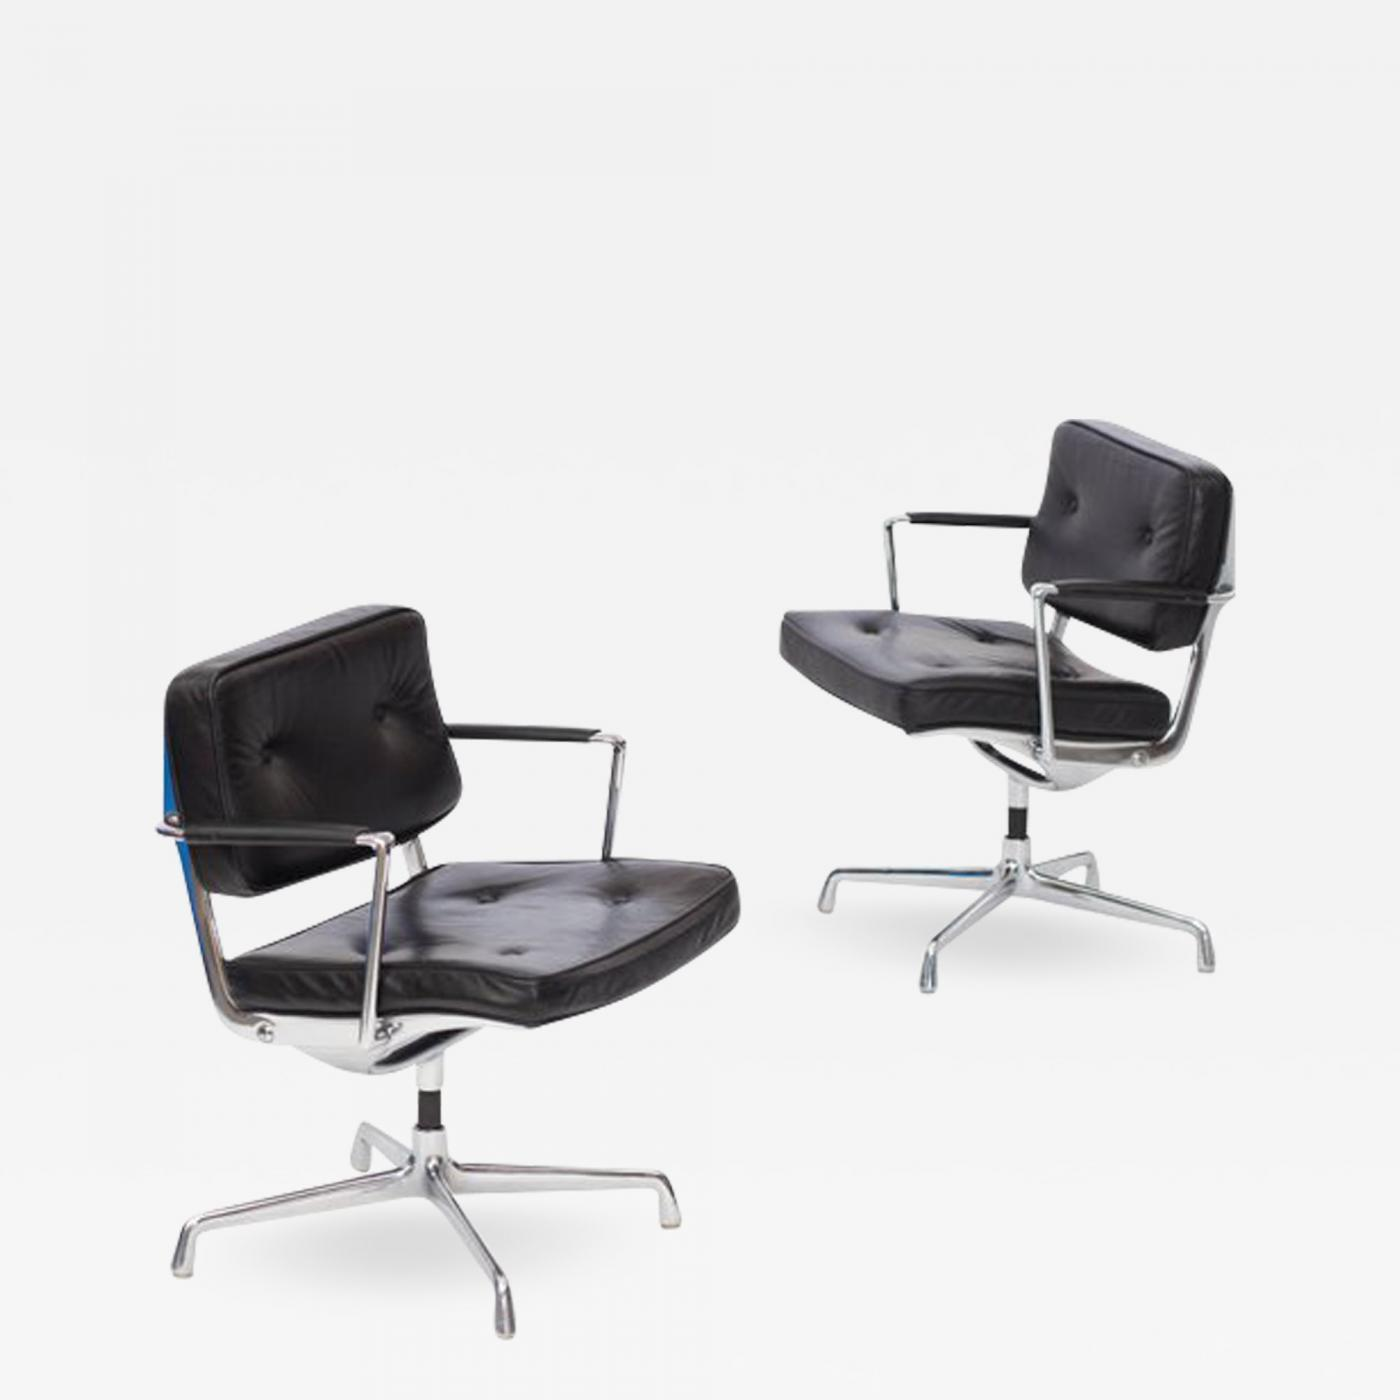 Eames Desk Chair Charles And Ray Eames Eames Intermediate Desk Chair In Black Leather 1968